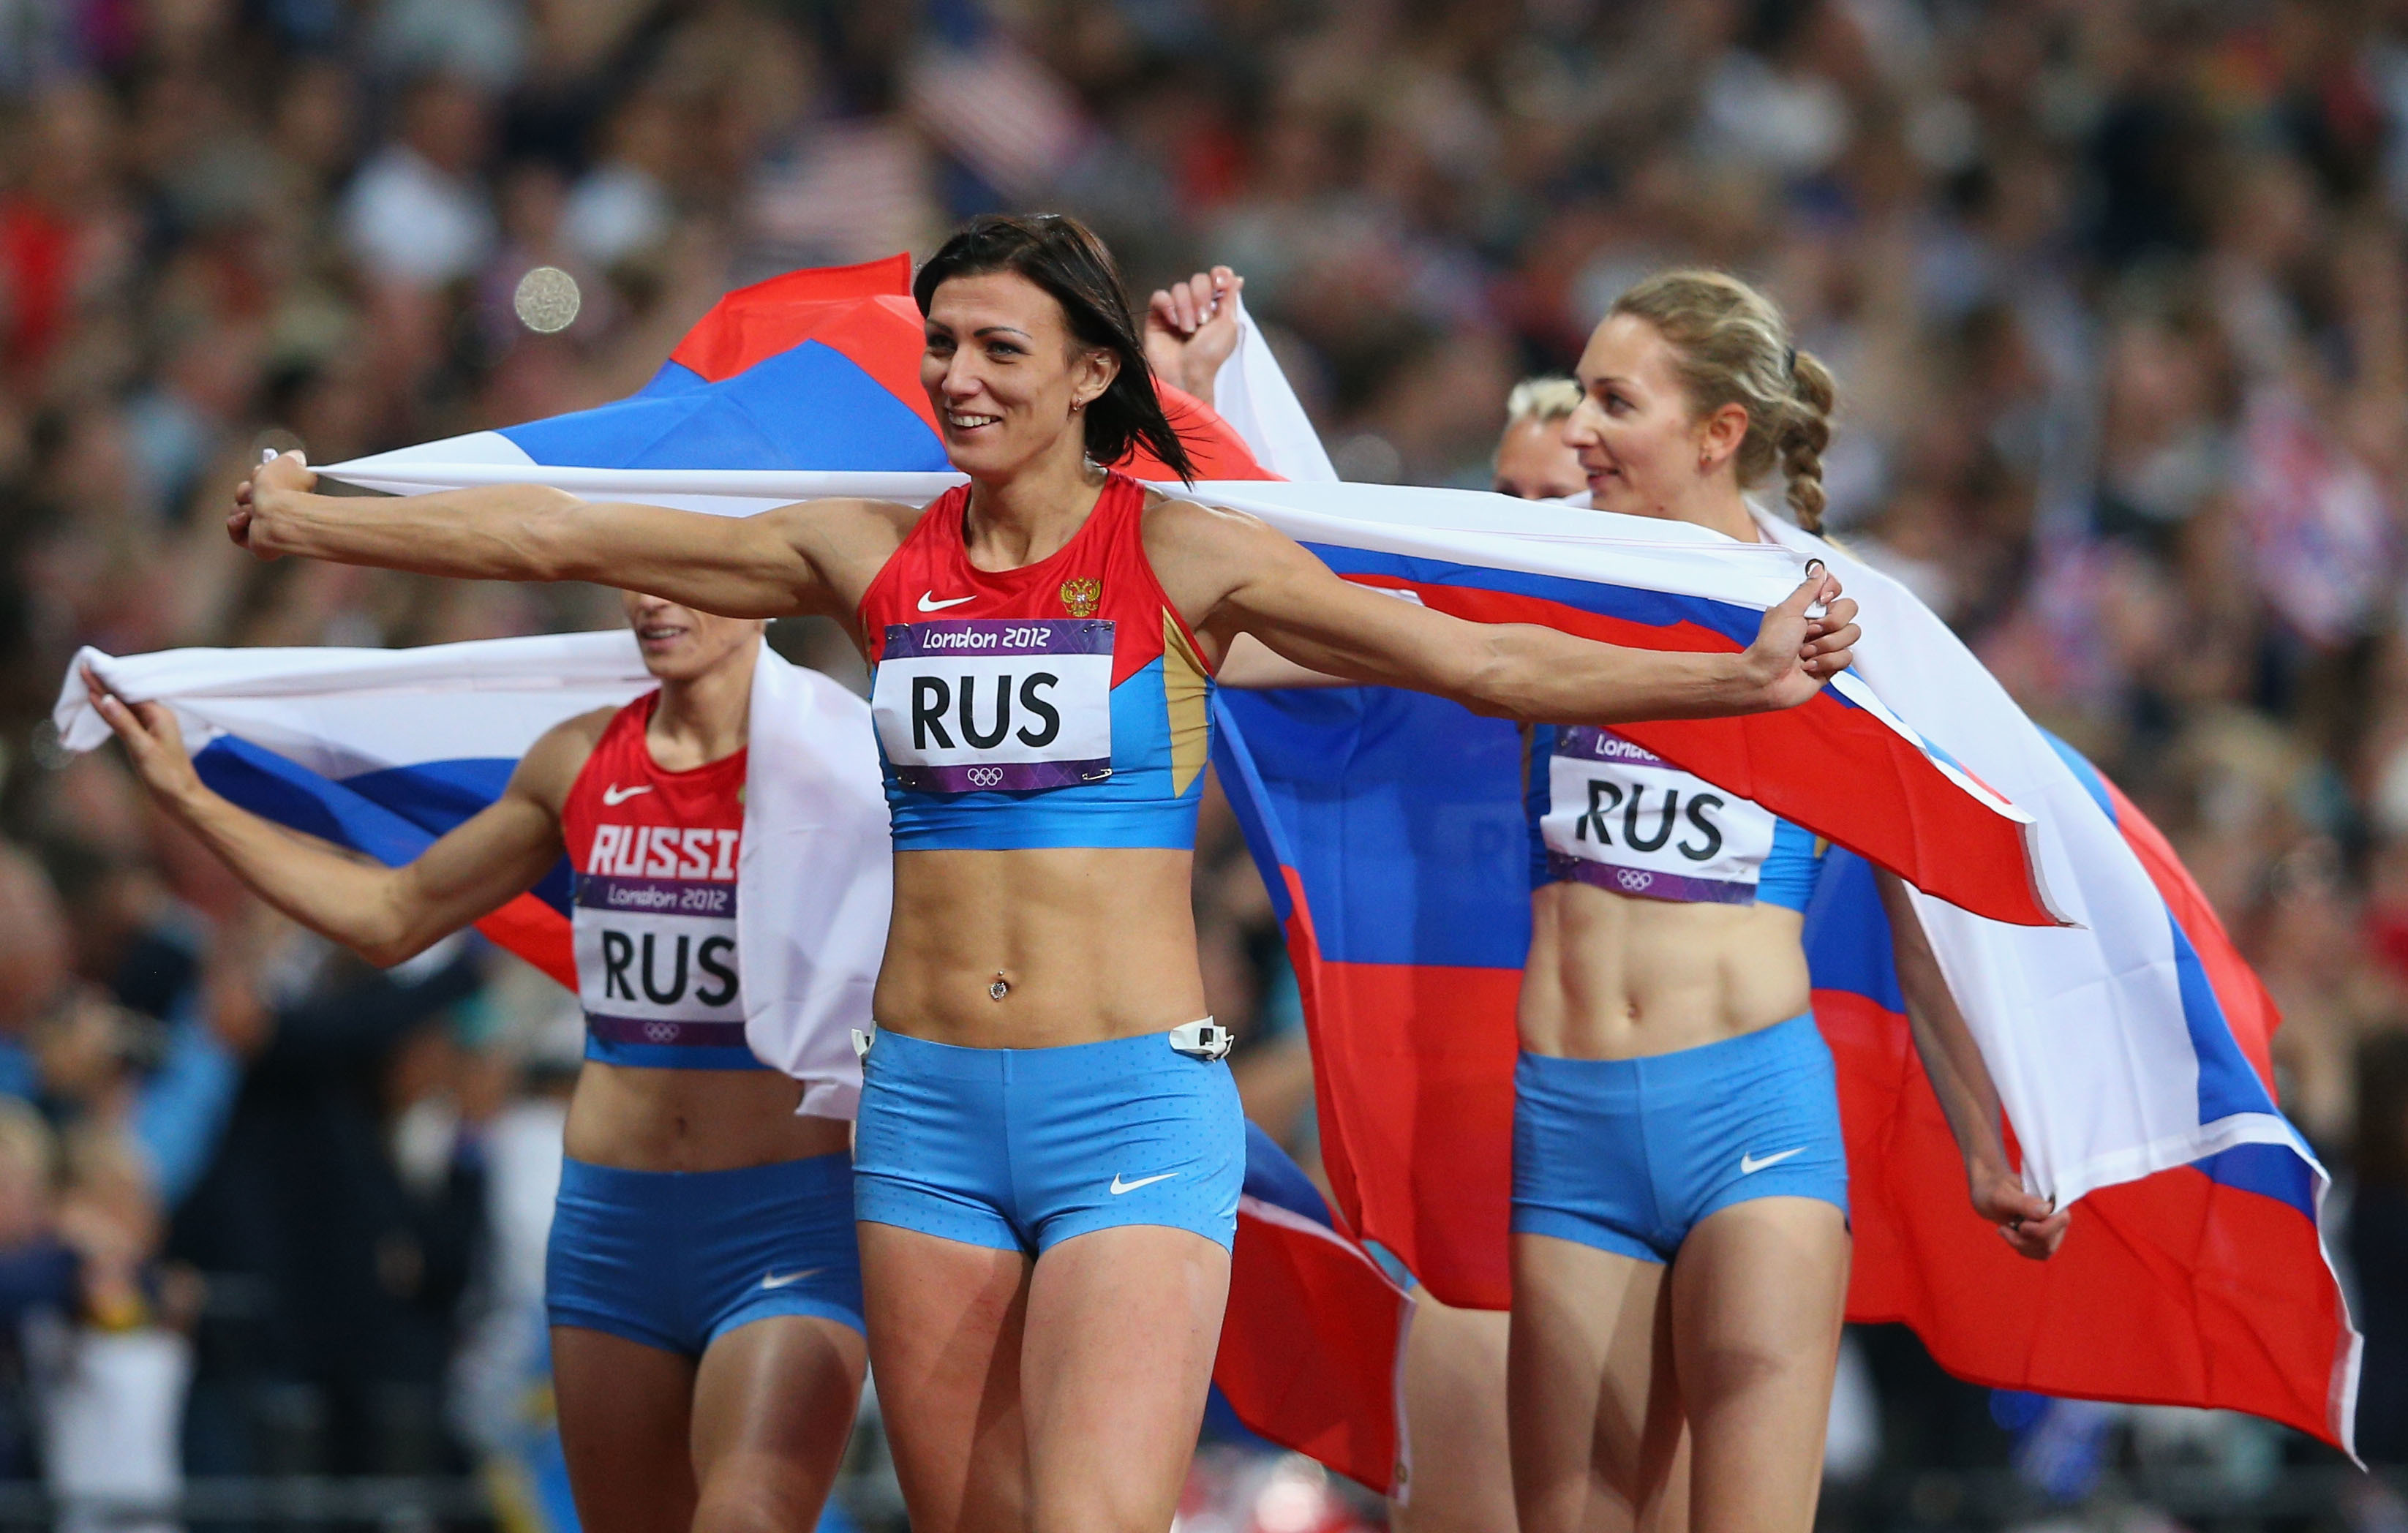 As a result of the doping scandal, Russian track and field athletes were stripped of all the medal they won between 2009-2013 by the IAAF